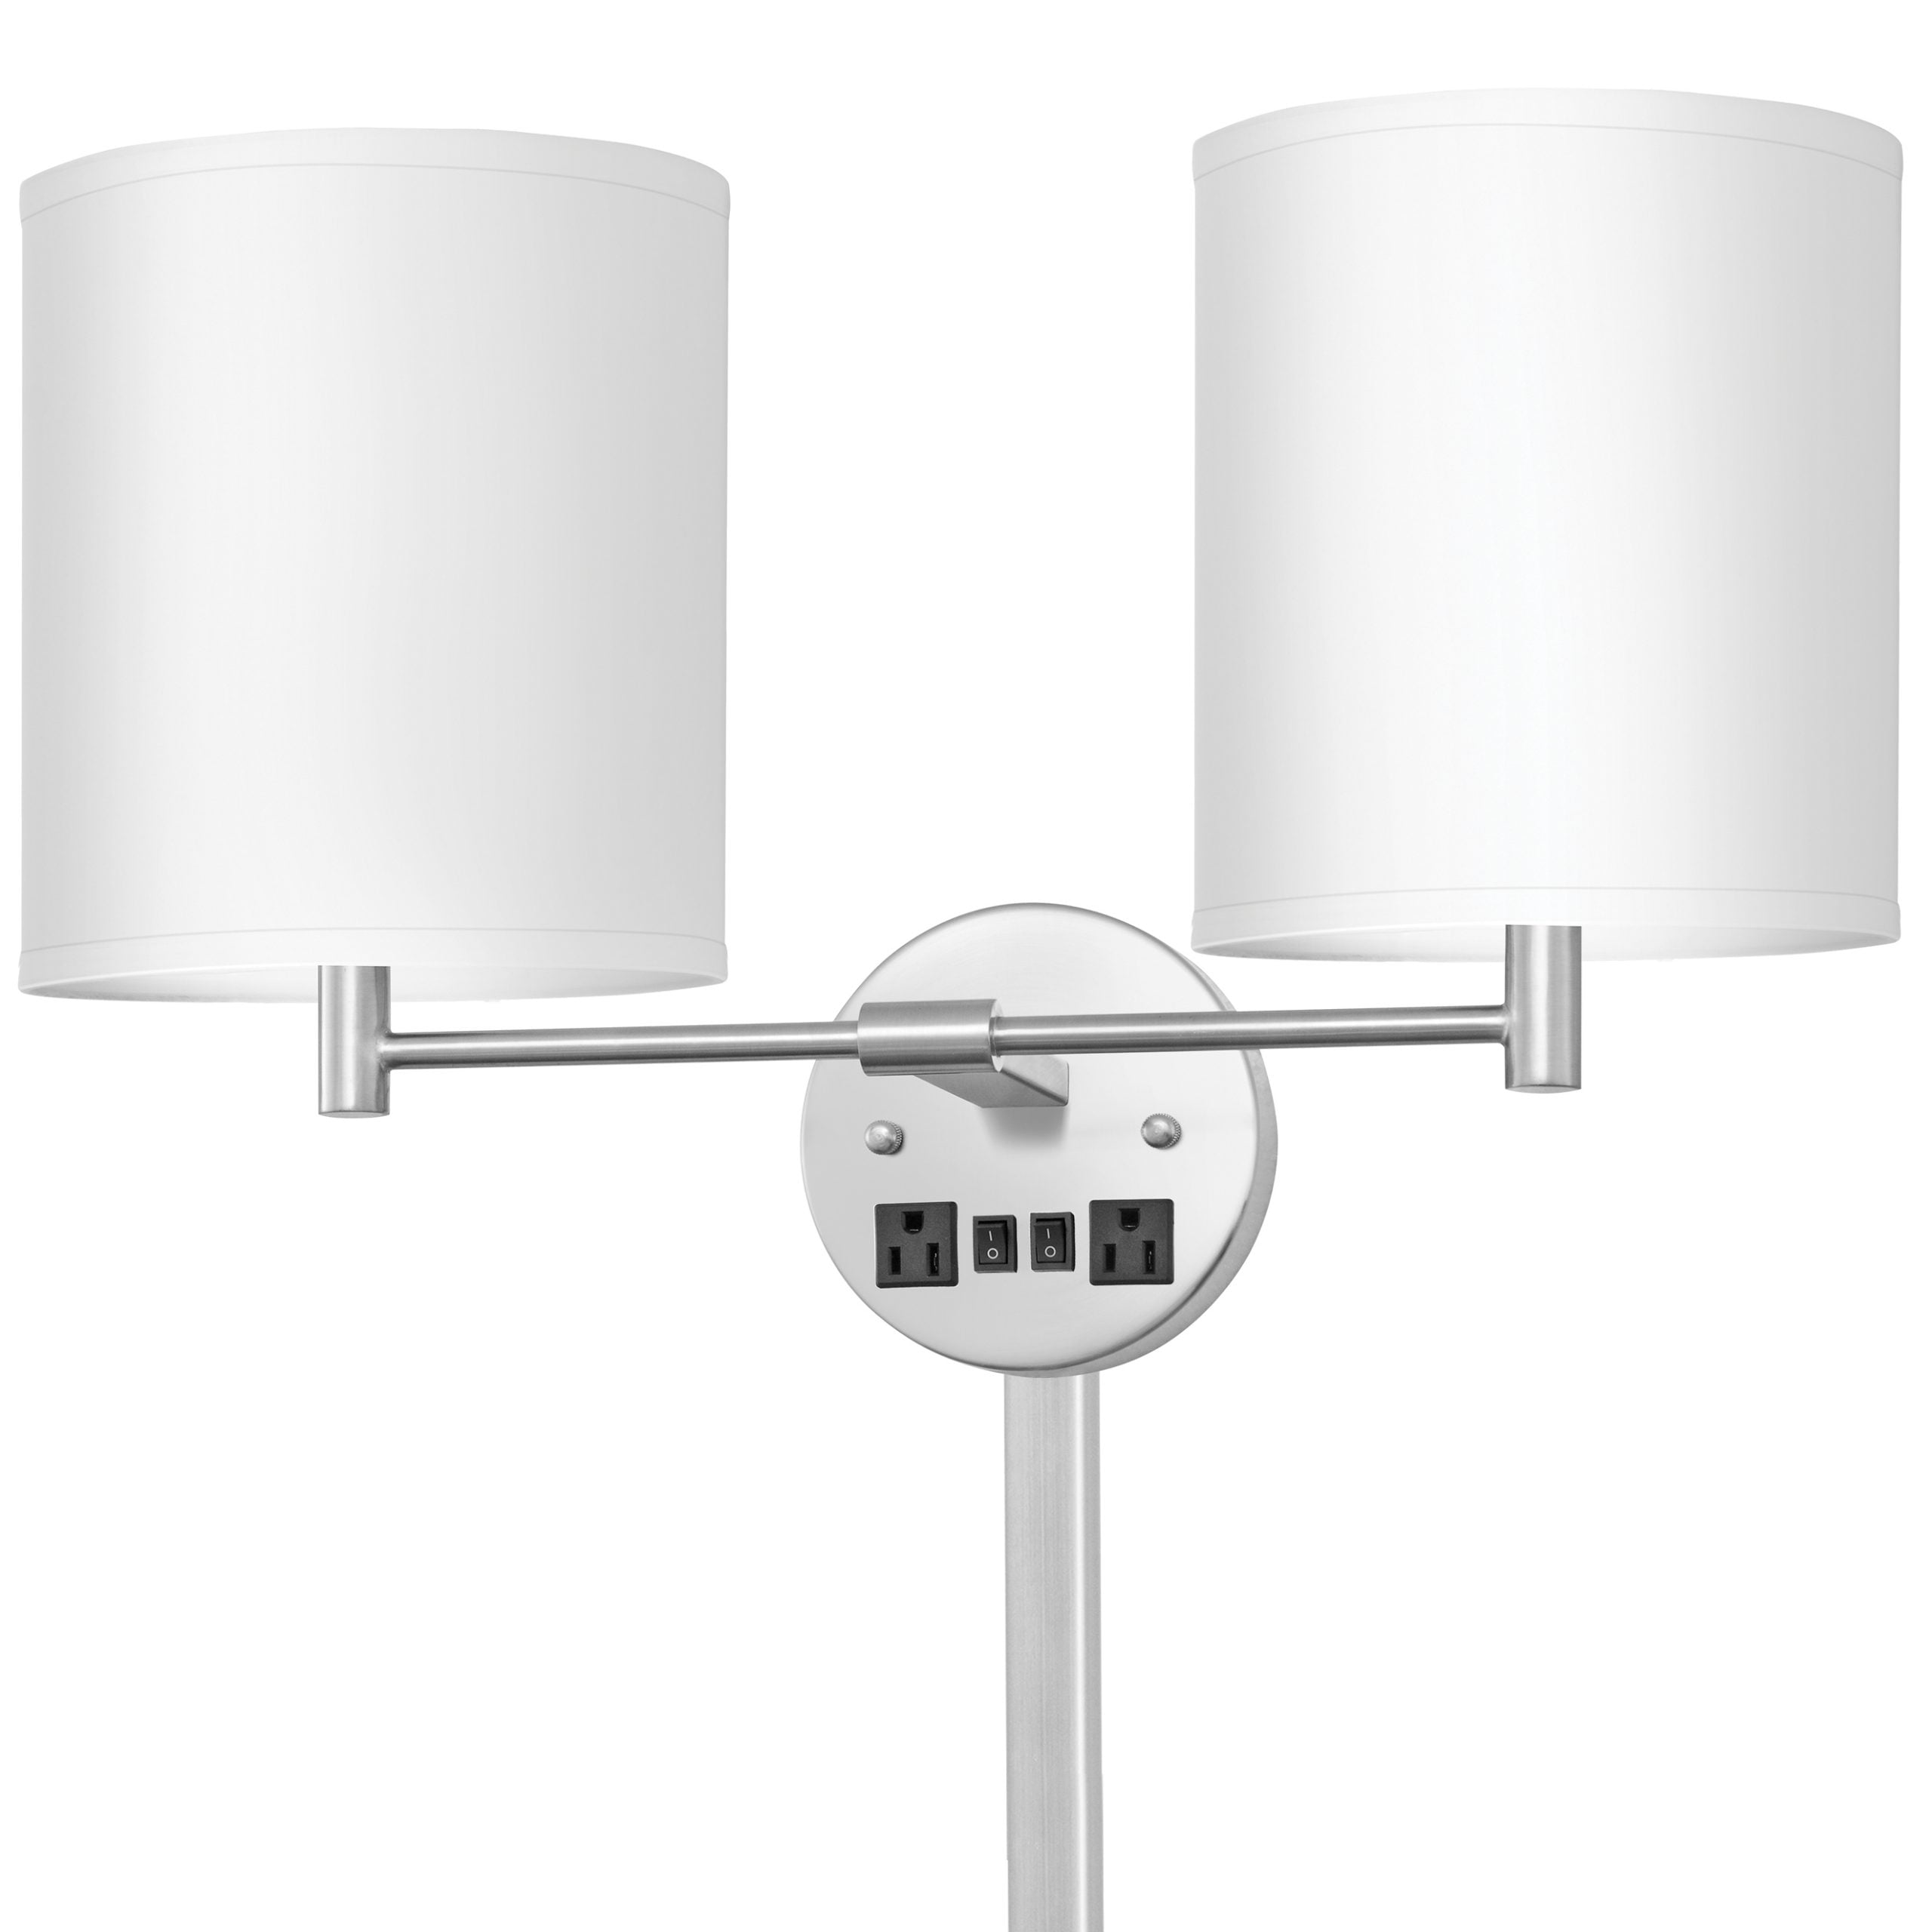 Corbel Double Wall Lamp with 2 Outlets